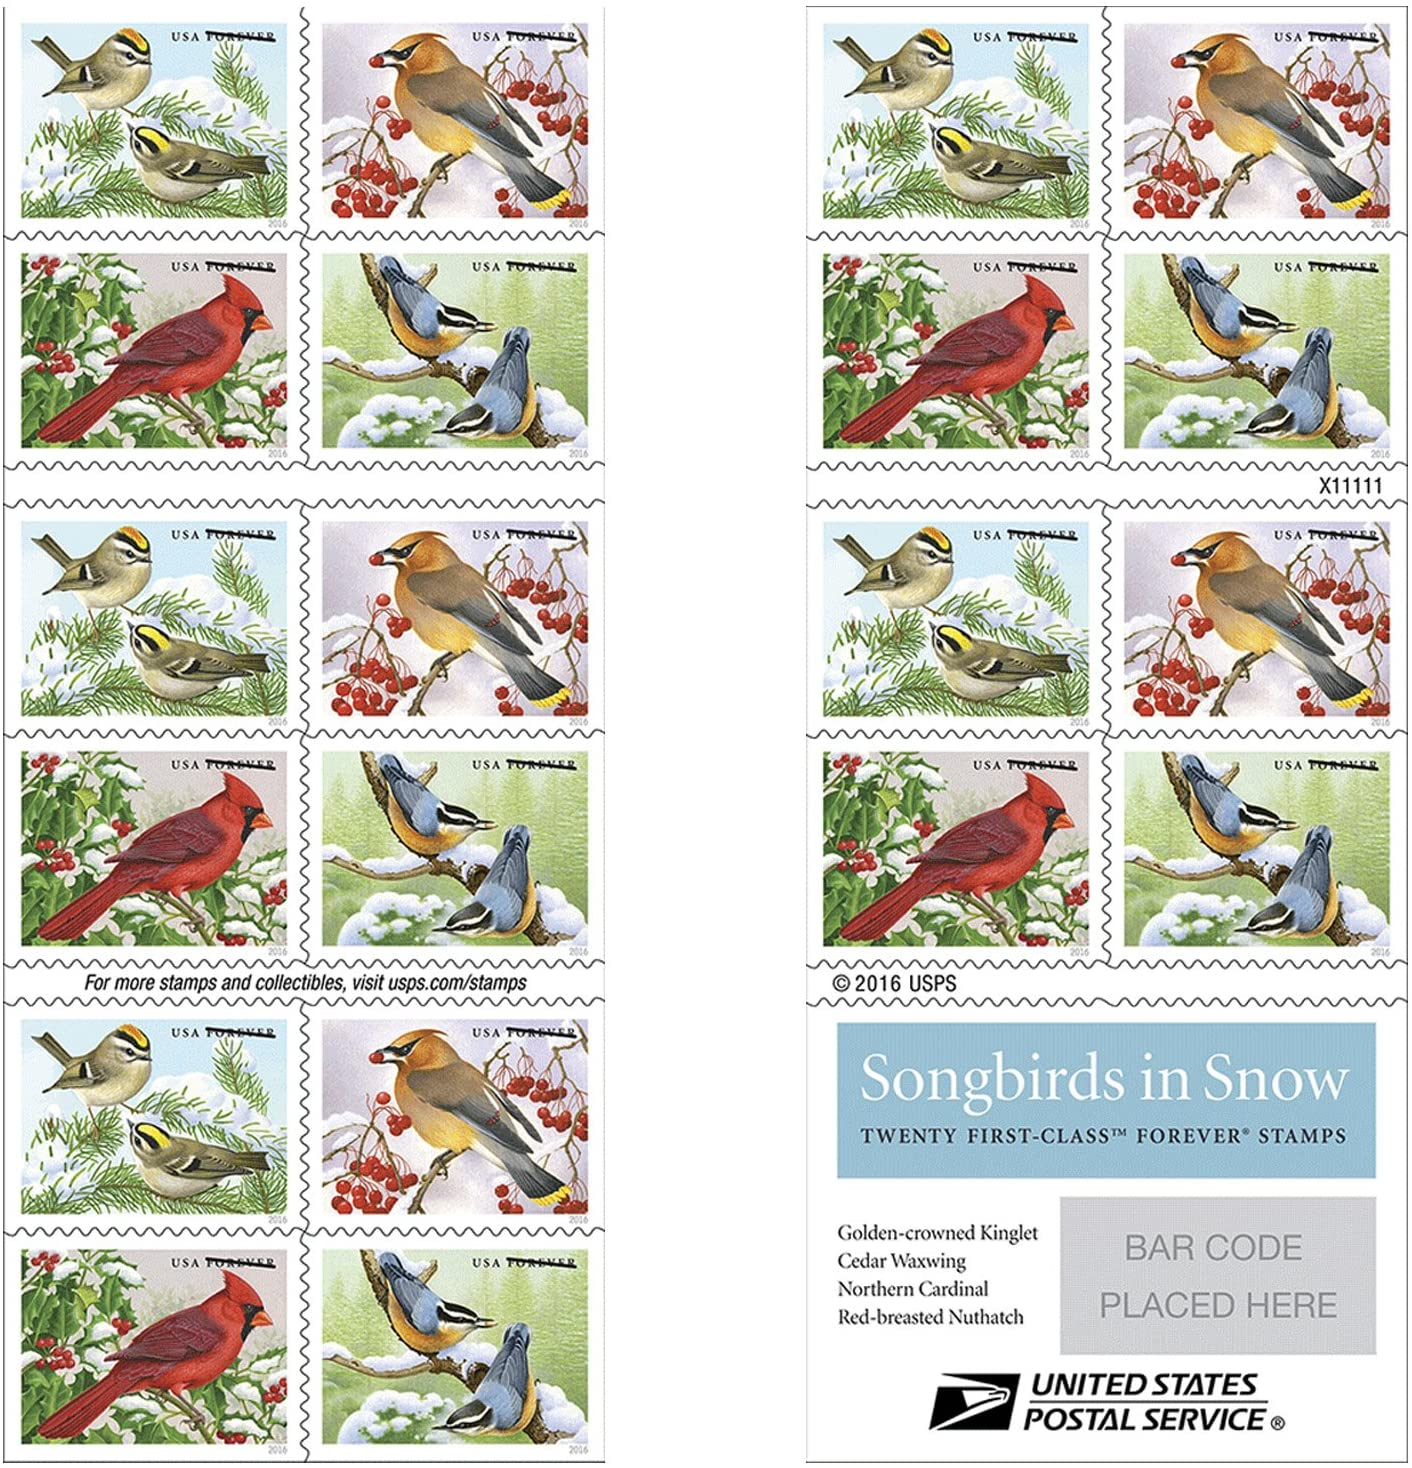 Songbirds in Snow Forever First Class USPS Postage Stamps (20 Stamps)